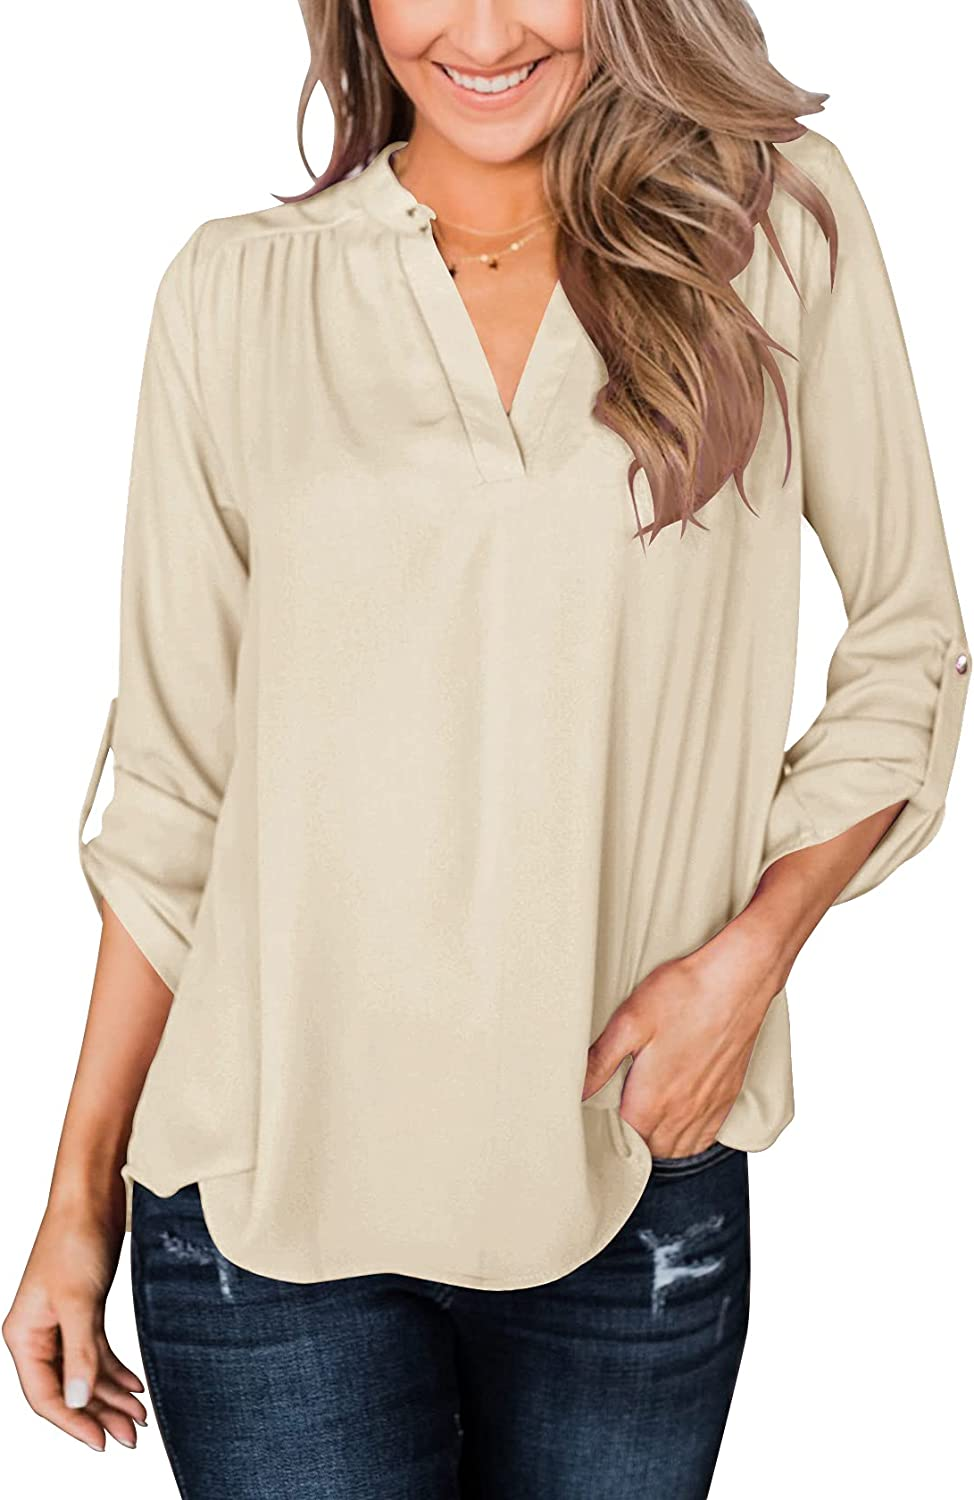 Dbtanjy Women's V Neck T Shirts Roll Up Sleeve Tunic Tops Button Down Blouses